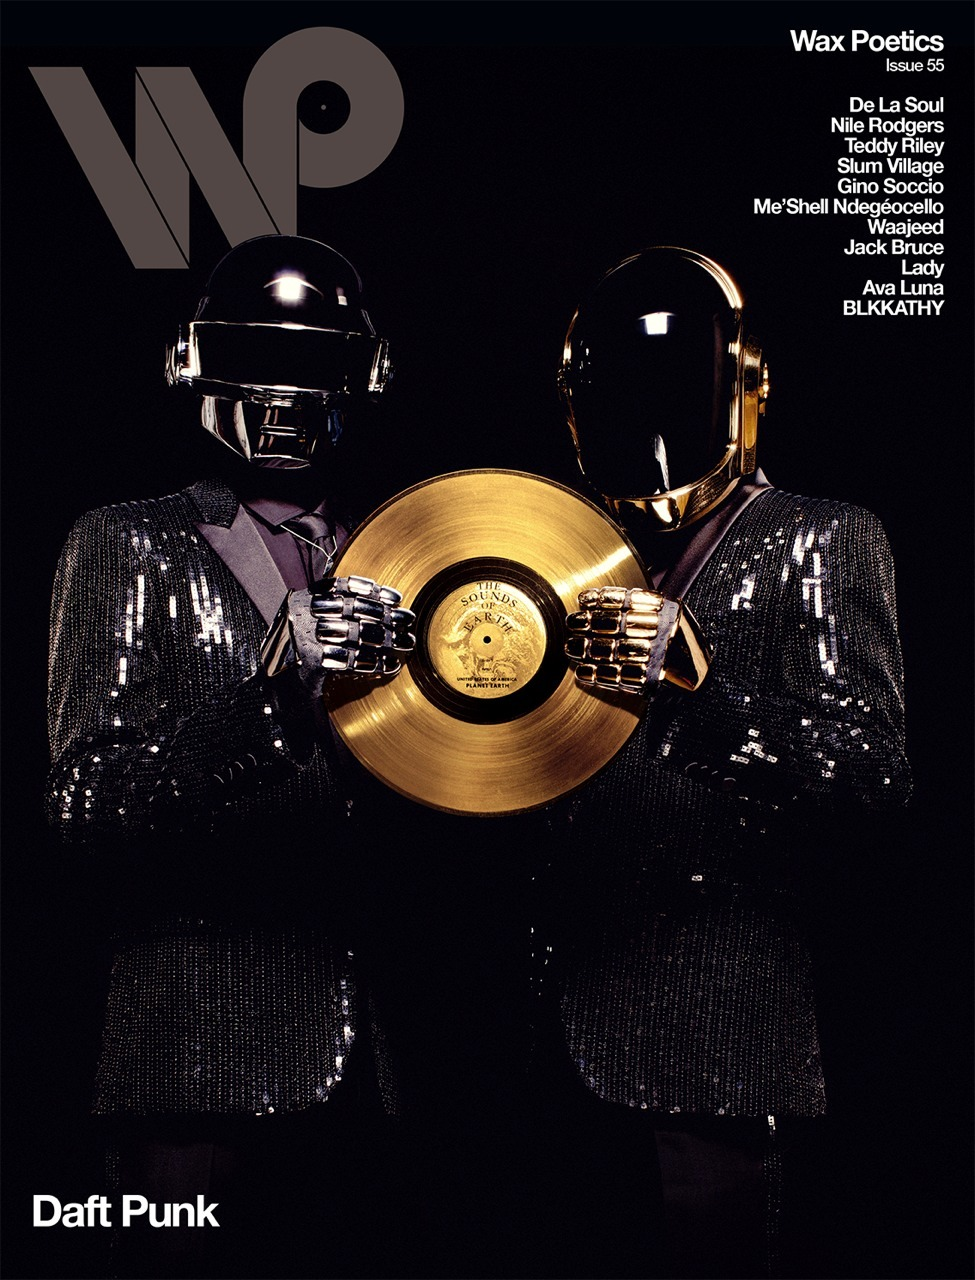 nabildo:  Daft punk for wax poetics by: NABIL